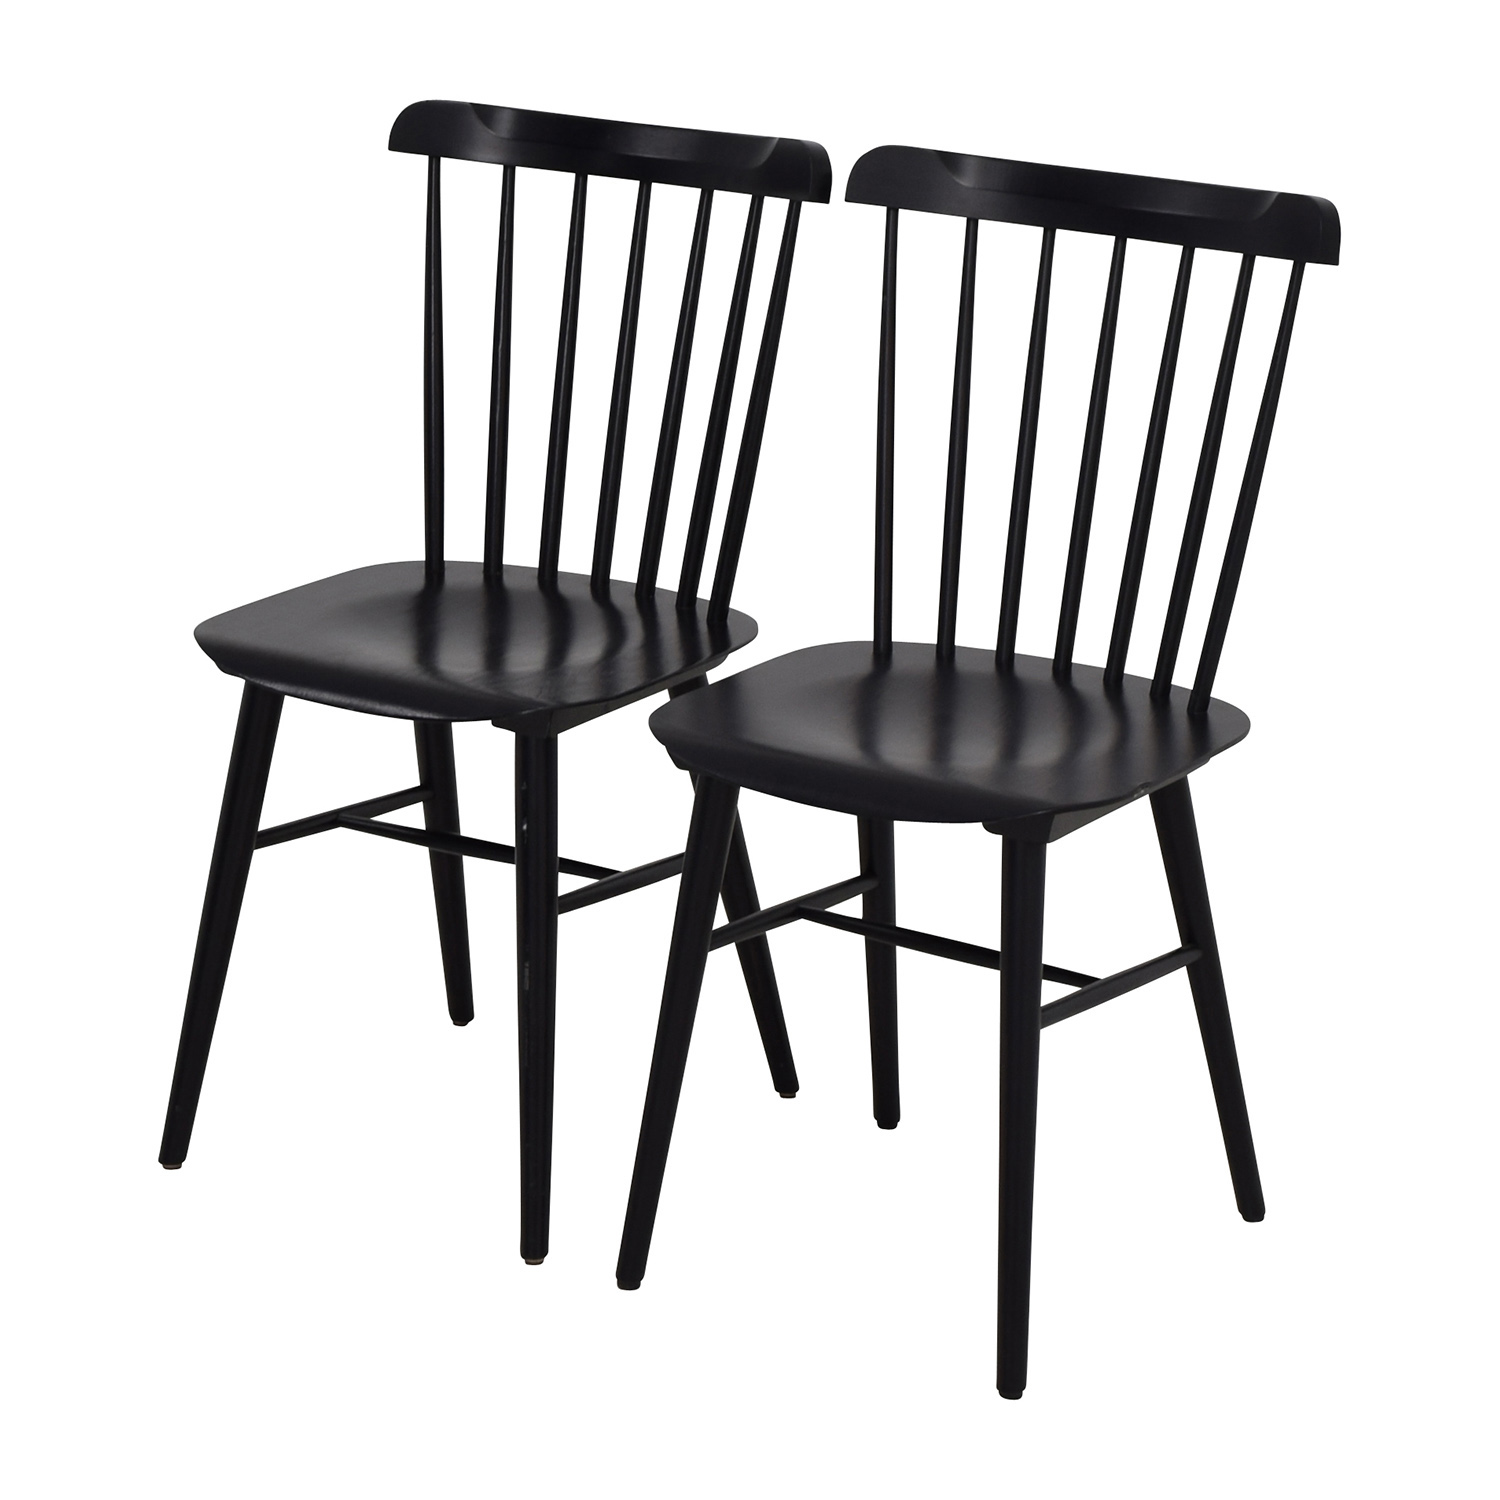 chair design within reach vintage convertible high 55 off black